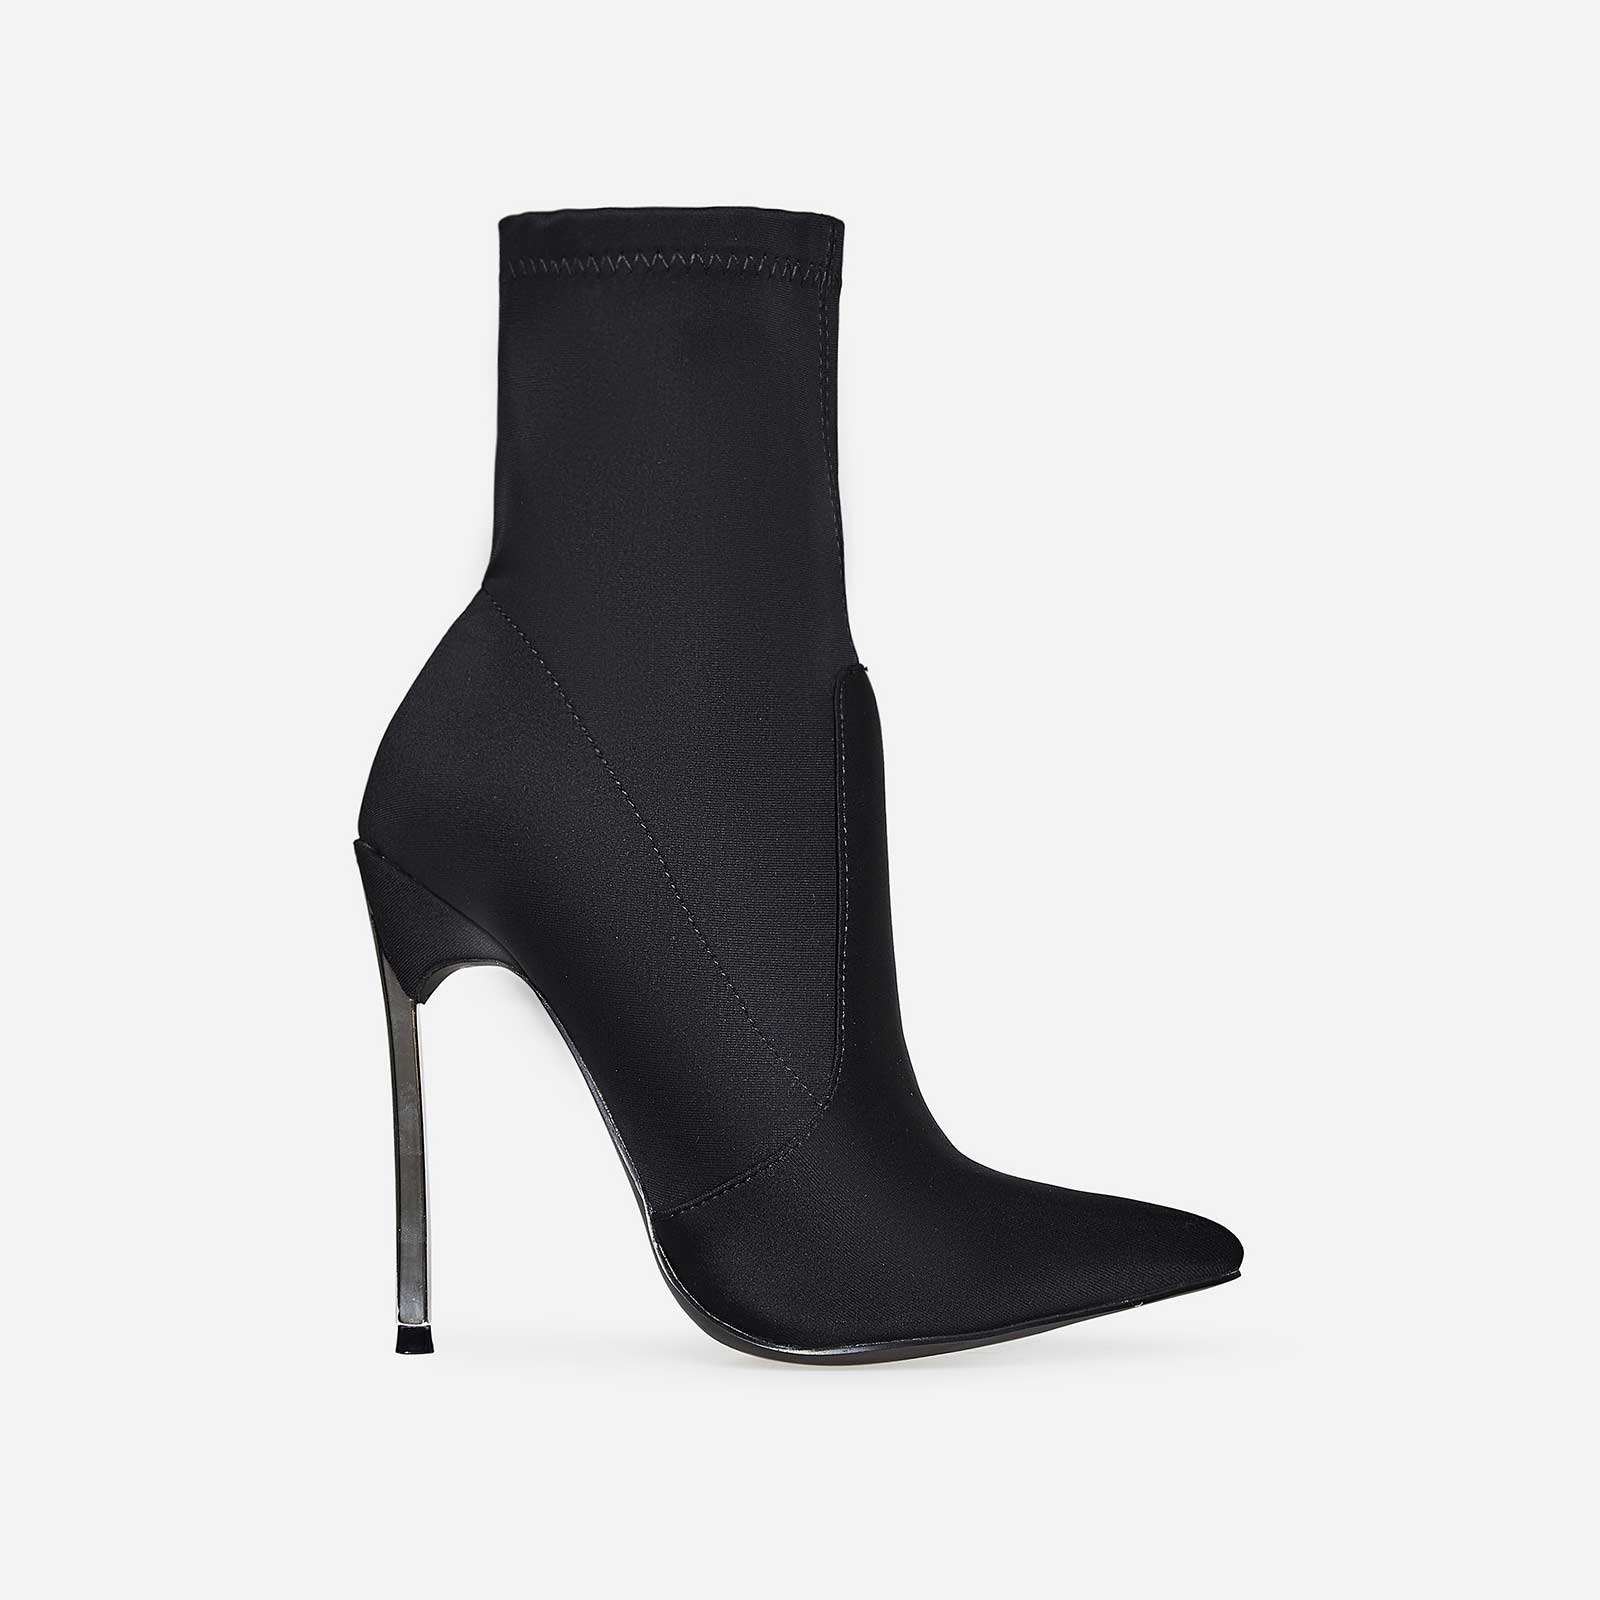 Ava Skinny Heel Pointed Toe Sock Boot In Black Lycra